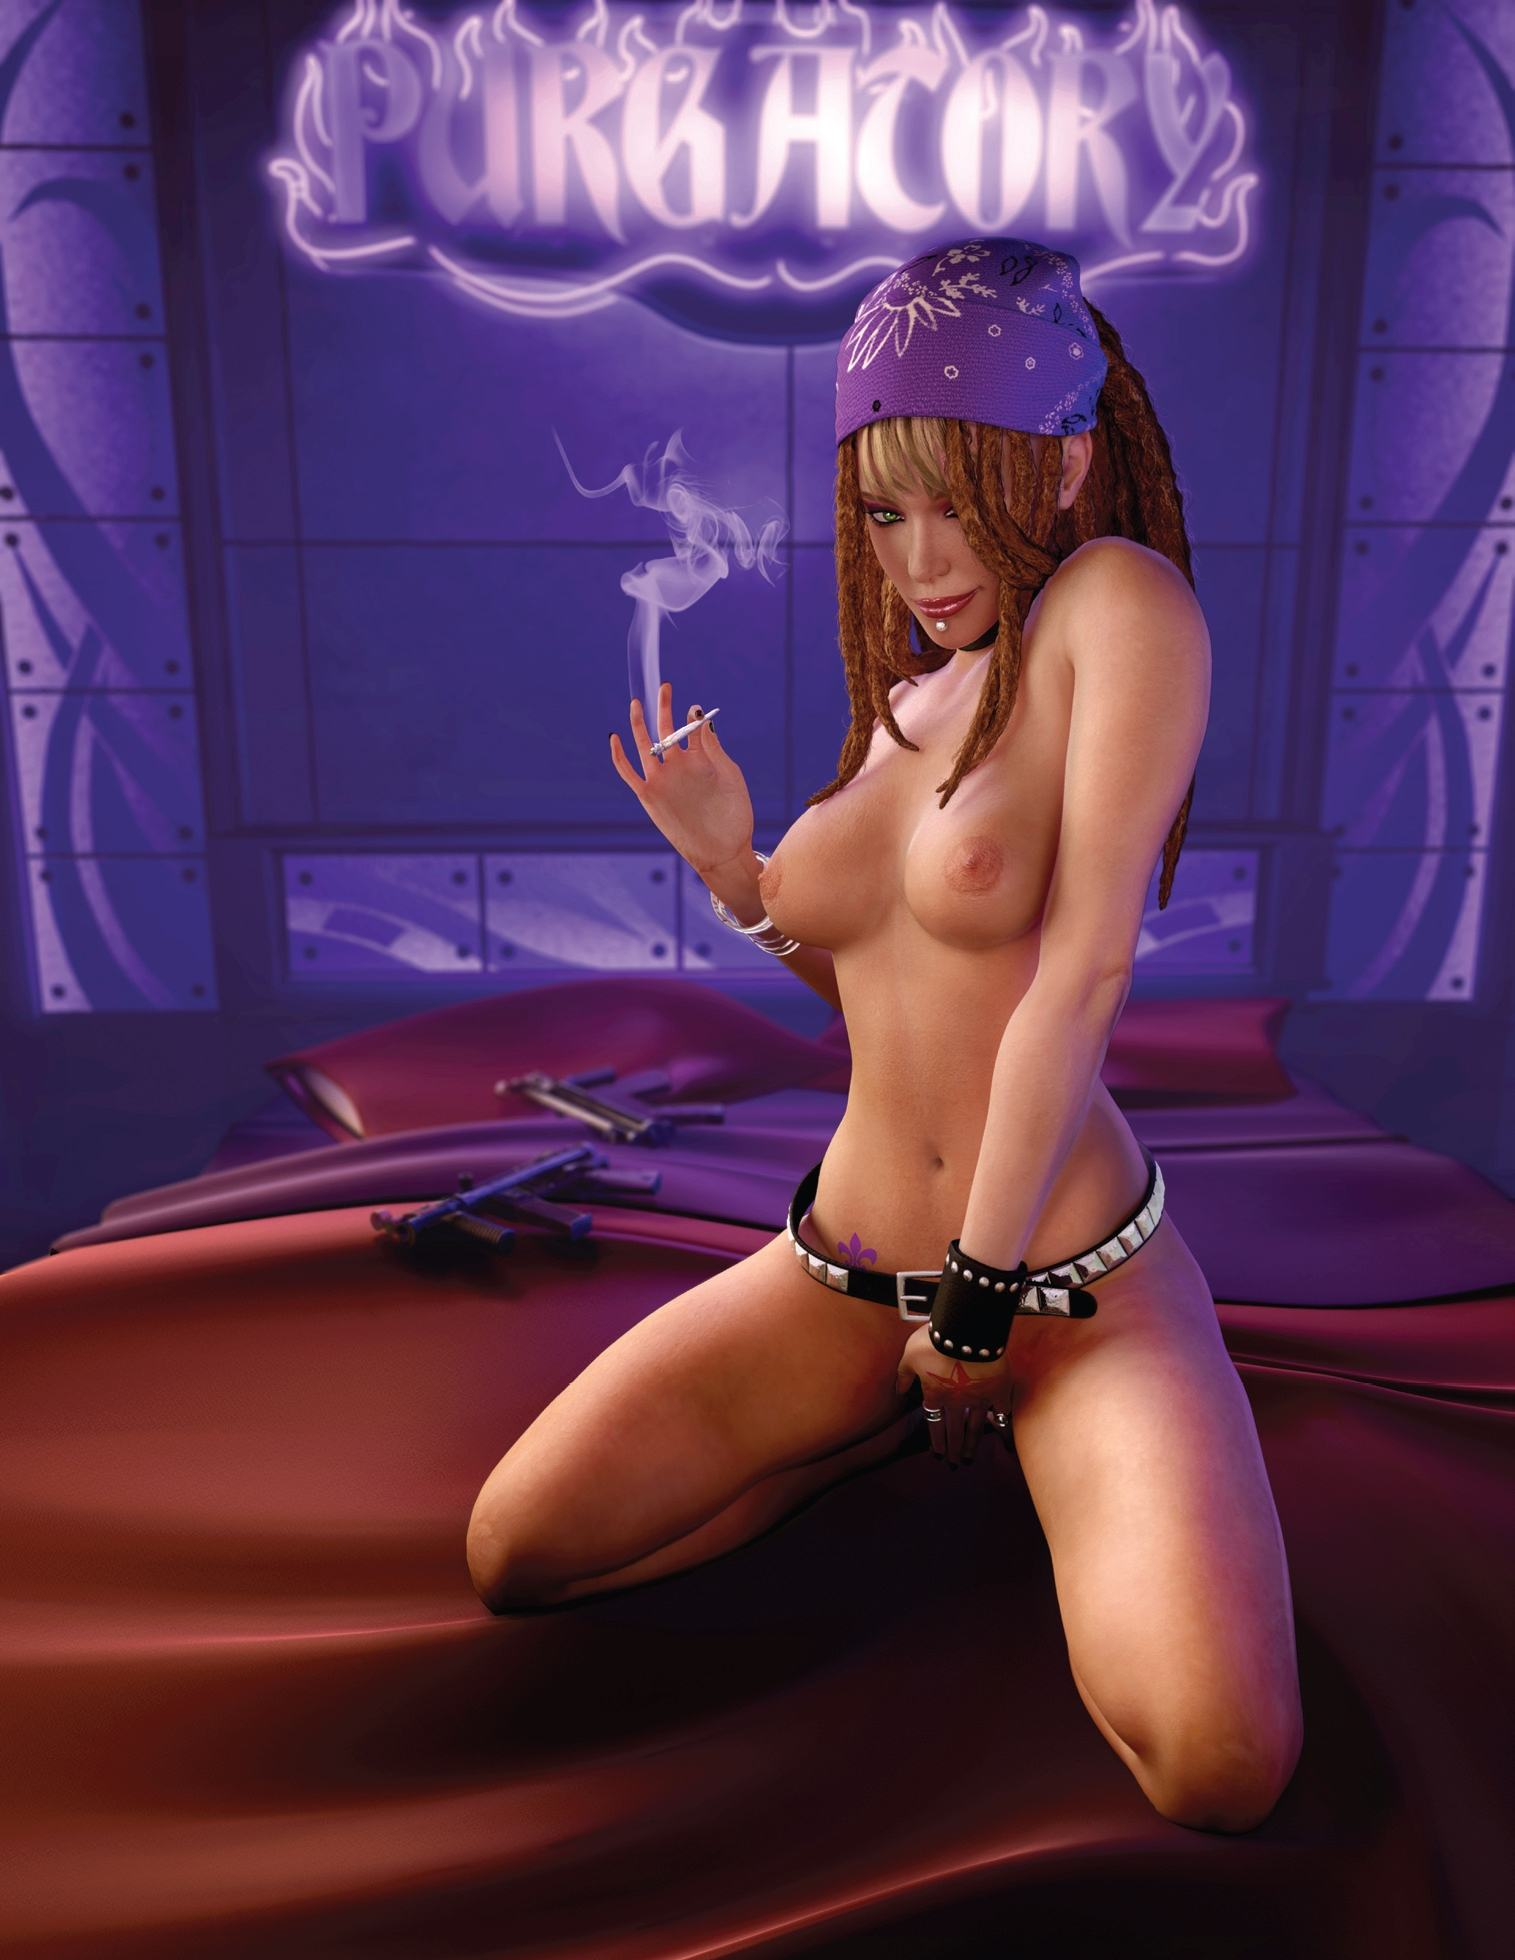 Saints row naked animation anime wifes